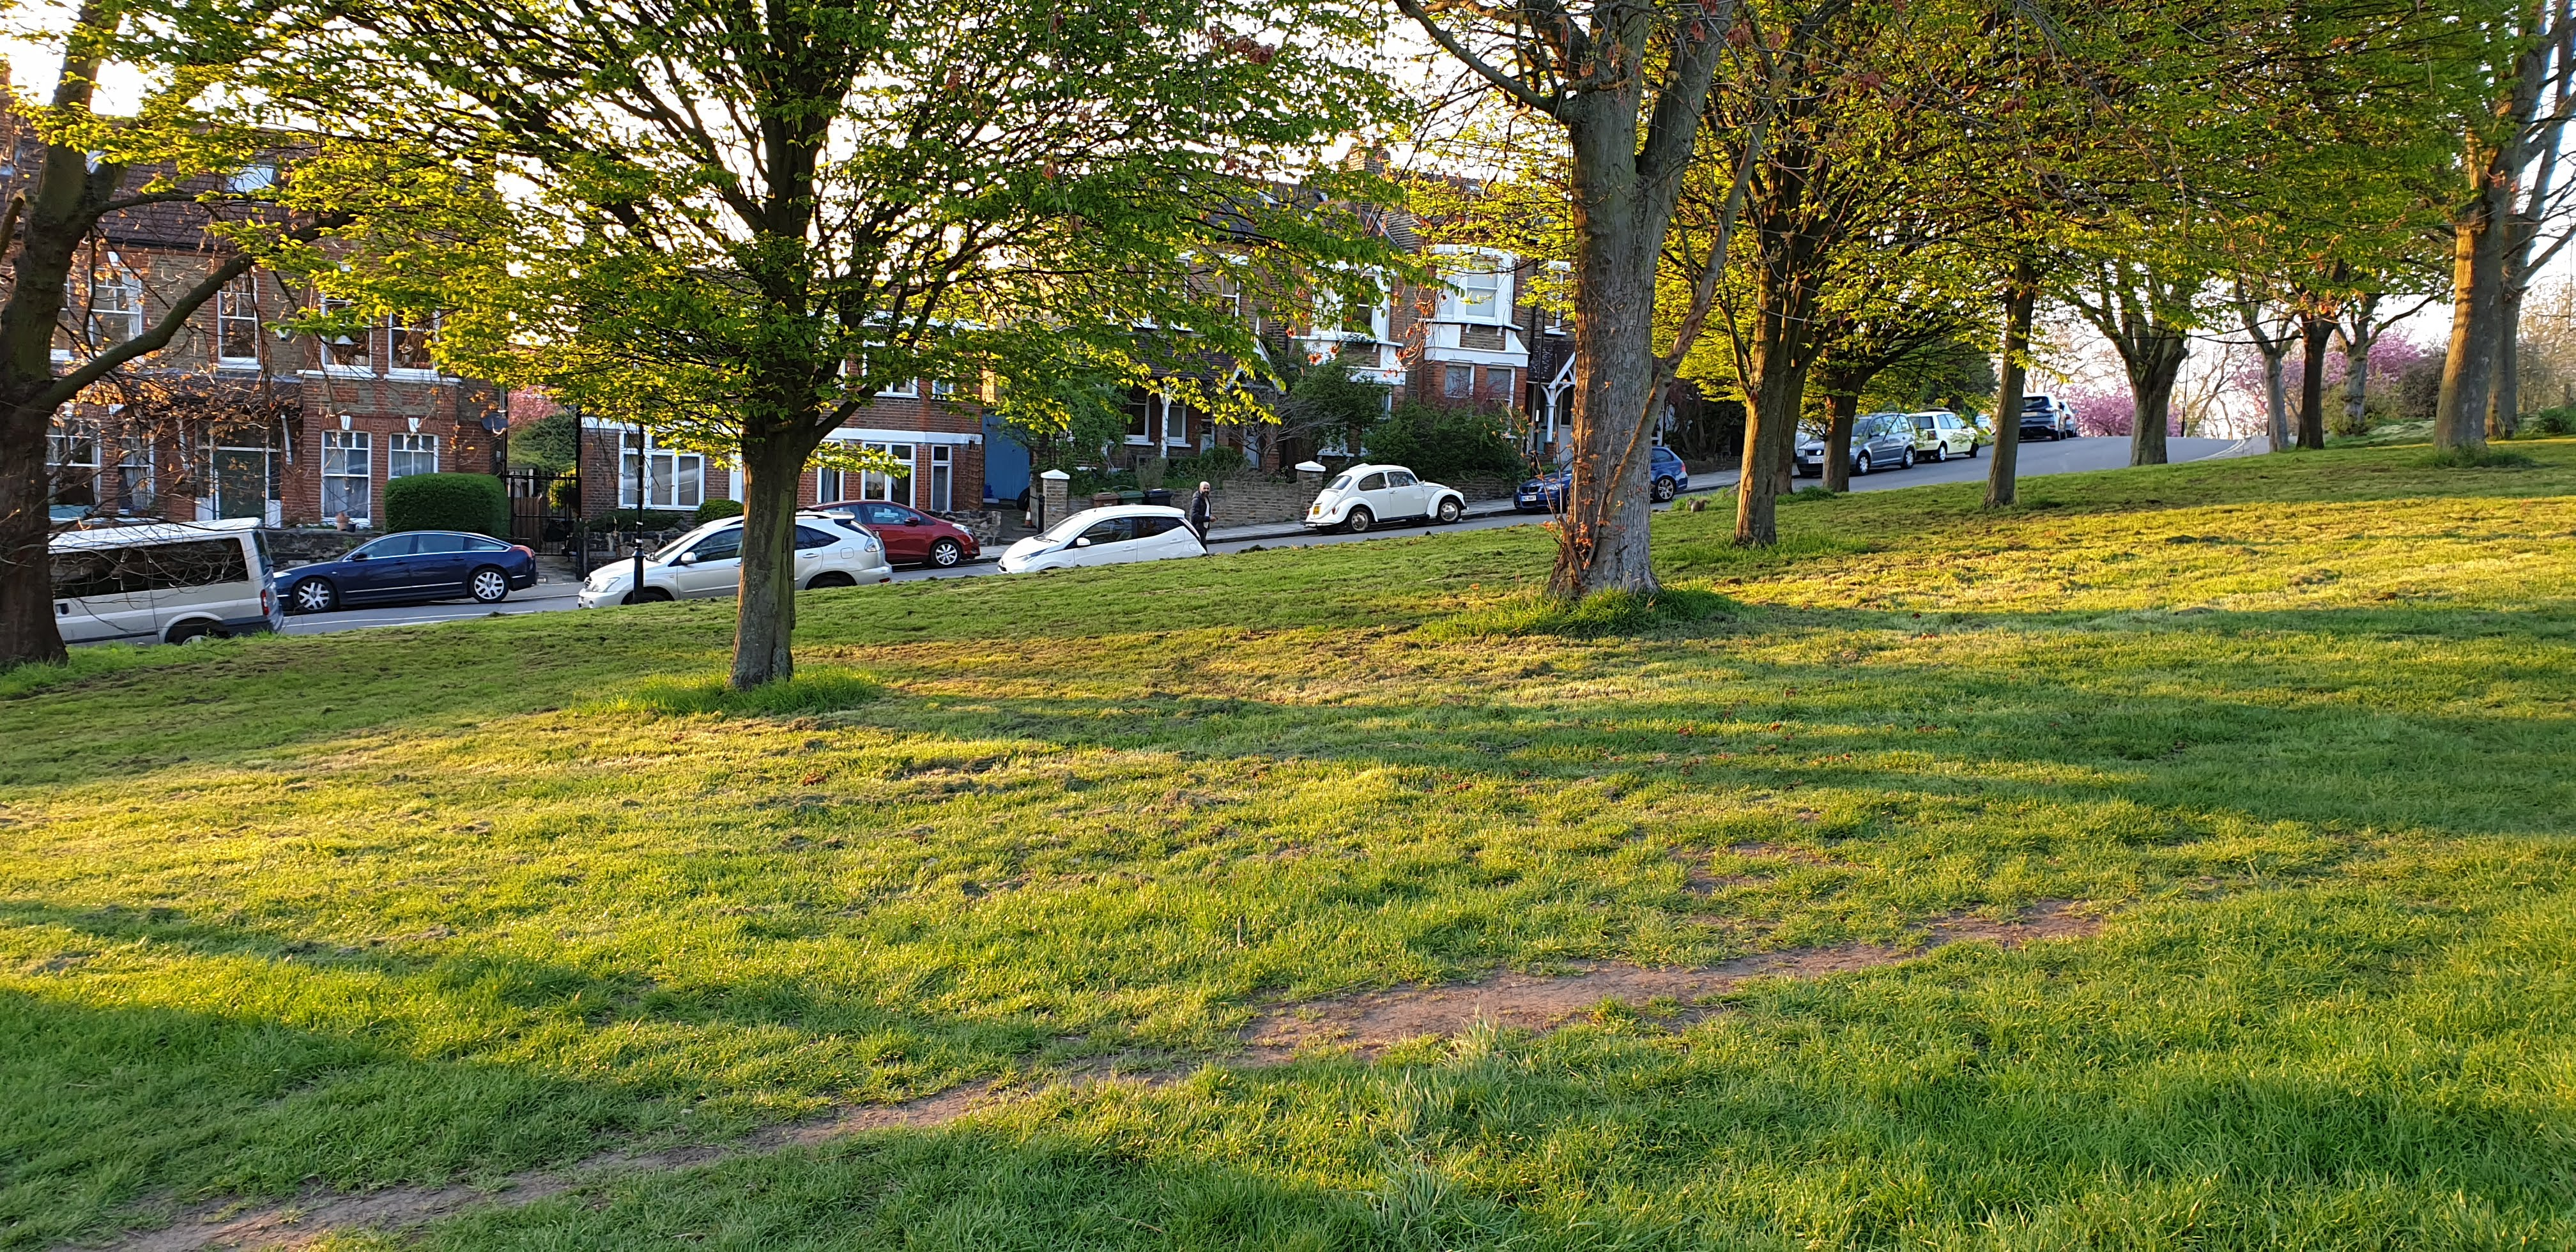 Hilly Fields, Lewisham April 2019 no grass mowing or strimming allowed near to tree stem to avoid damage to surface roots and bark. By agreement with Friends of Hilly Fields, Lewisham parks officers and the parks and open spaces contractor, Glendale.